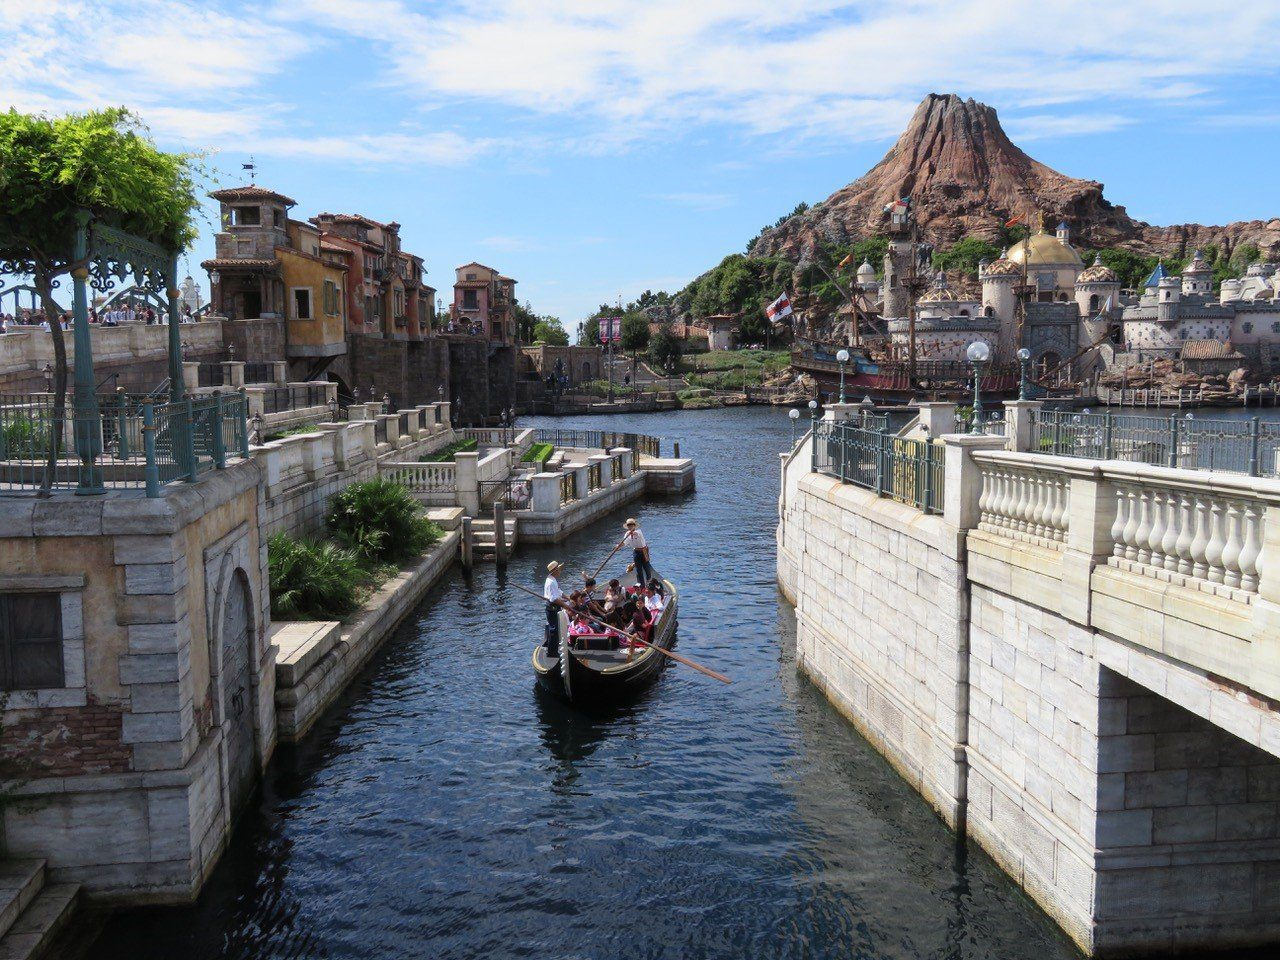 Disneysea Theme Park in Tokyo - Our 3 Kids V The World